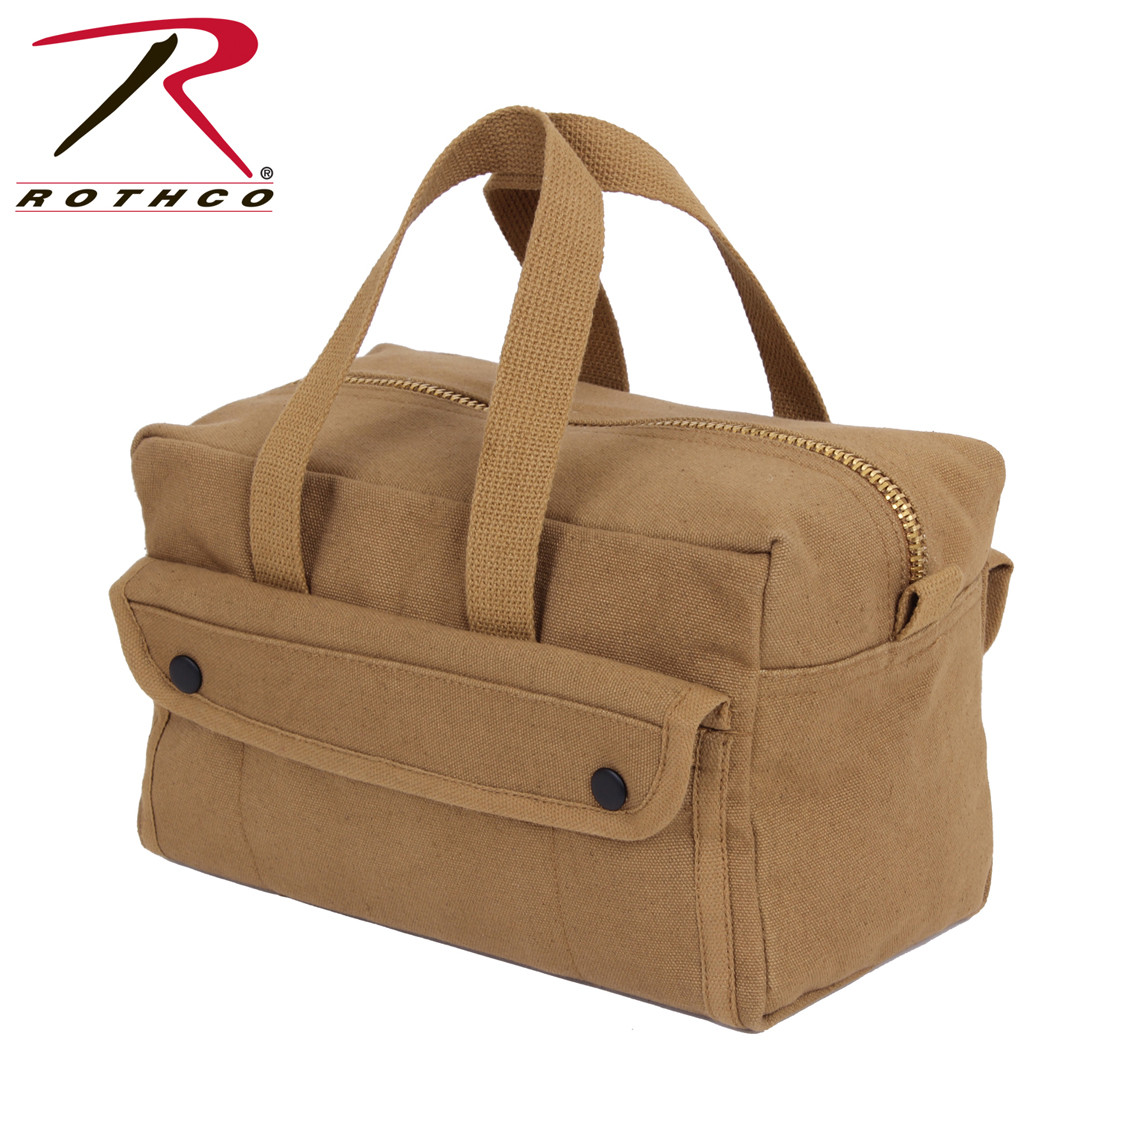 Shop Coyote Brown Mechanics Tool Bags - Fatigues Army Navy Gear 53b9a4f2b17cf